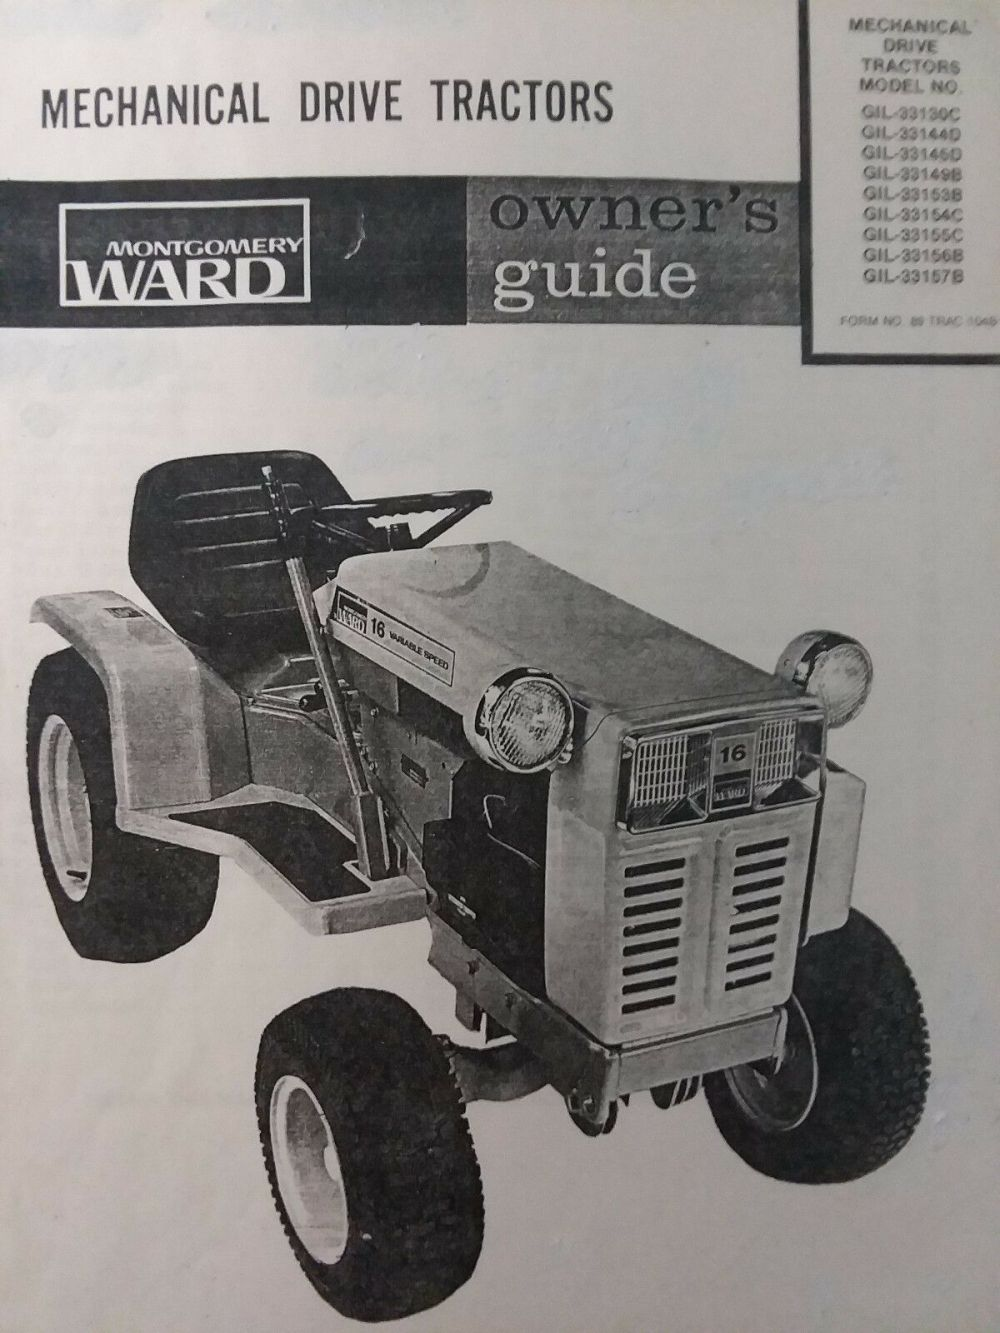 medium resolution of montgomery ward gilson gear drive 16 hp garden tractor owners manual gil 33130c for sale online ebay